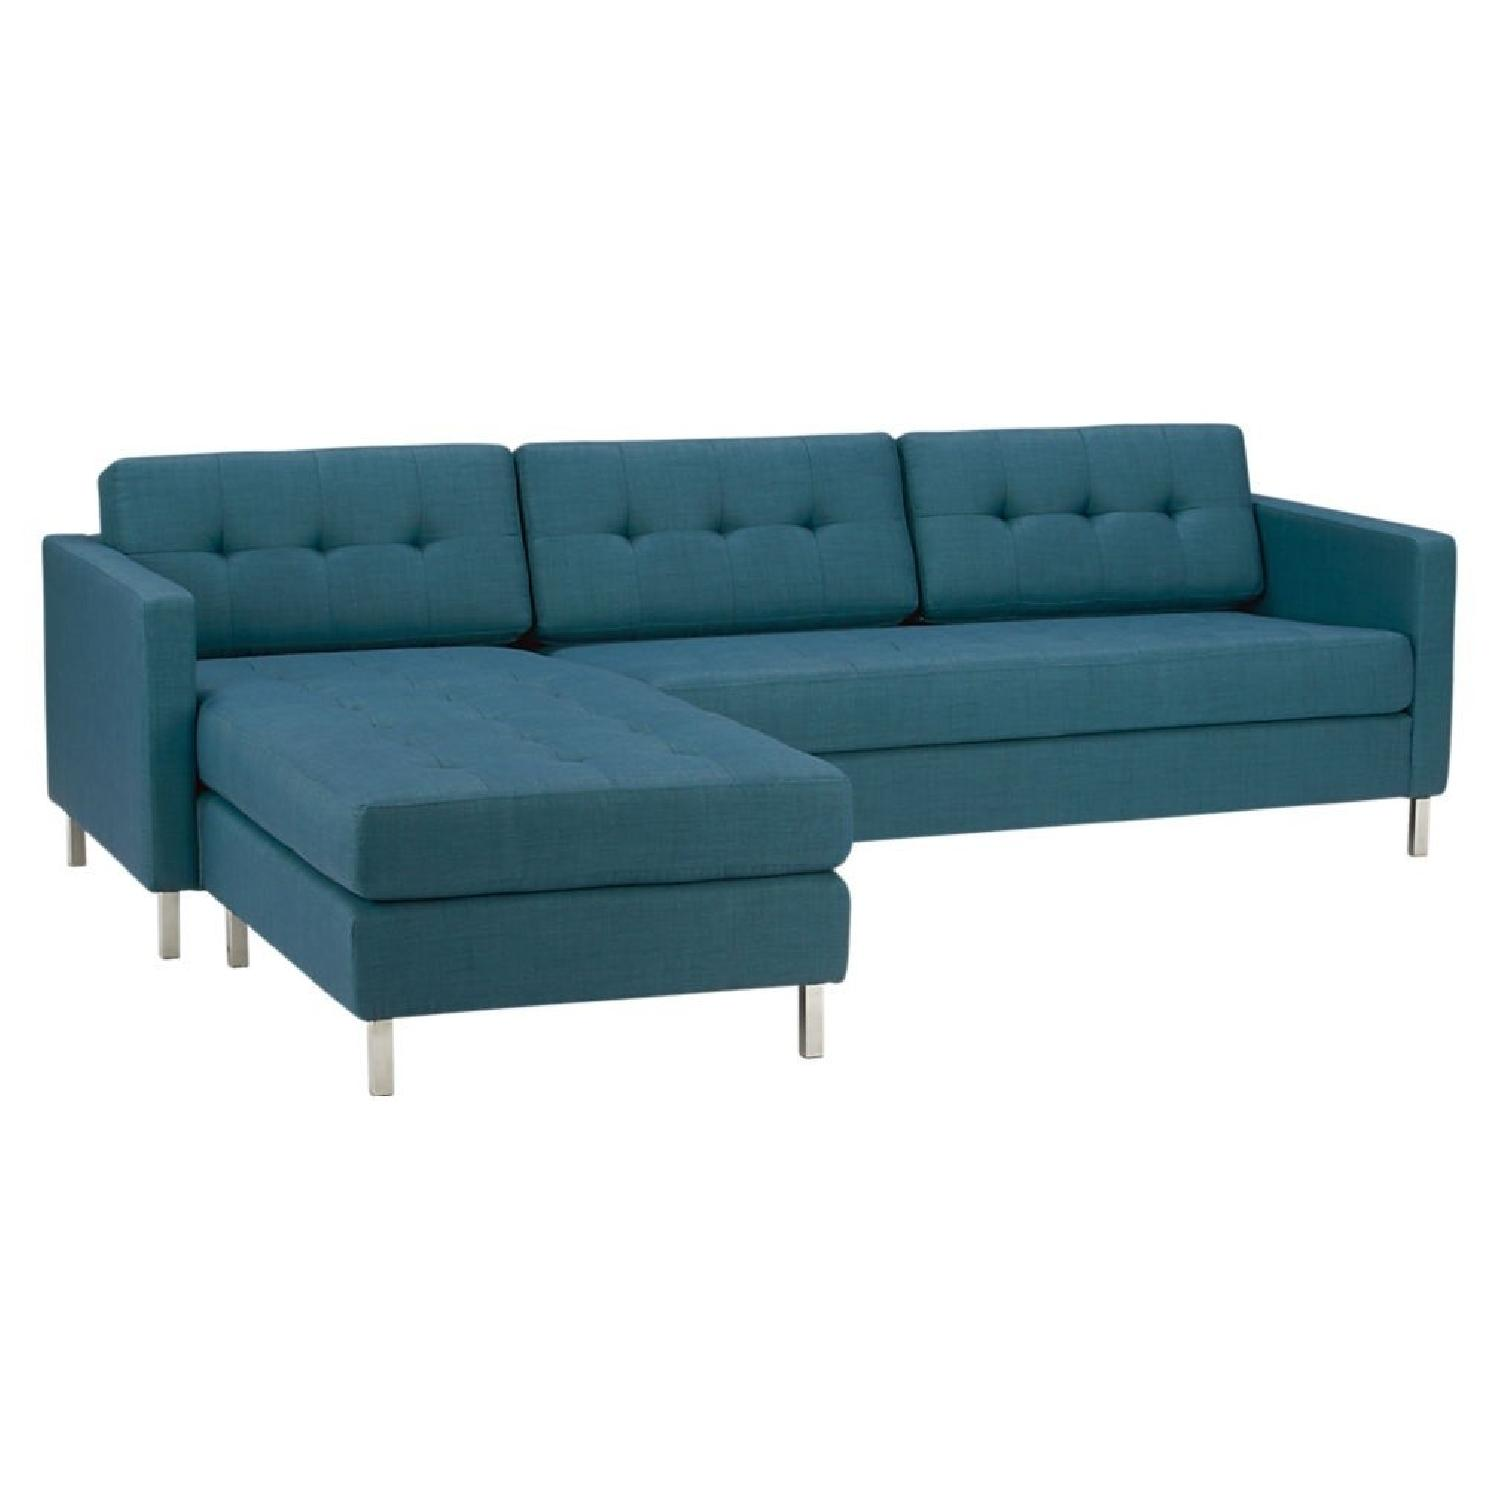 CB2 Ditto II Sectional Sofa In Peacock Color ...